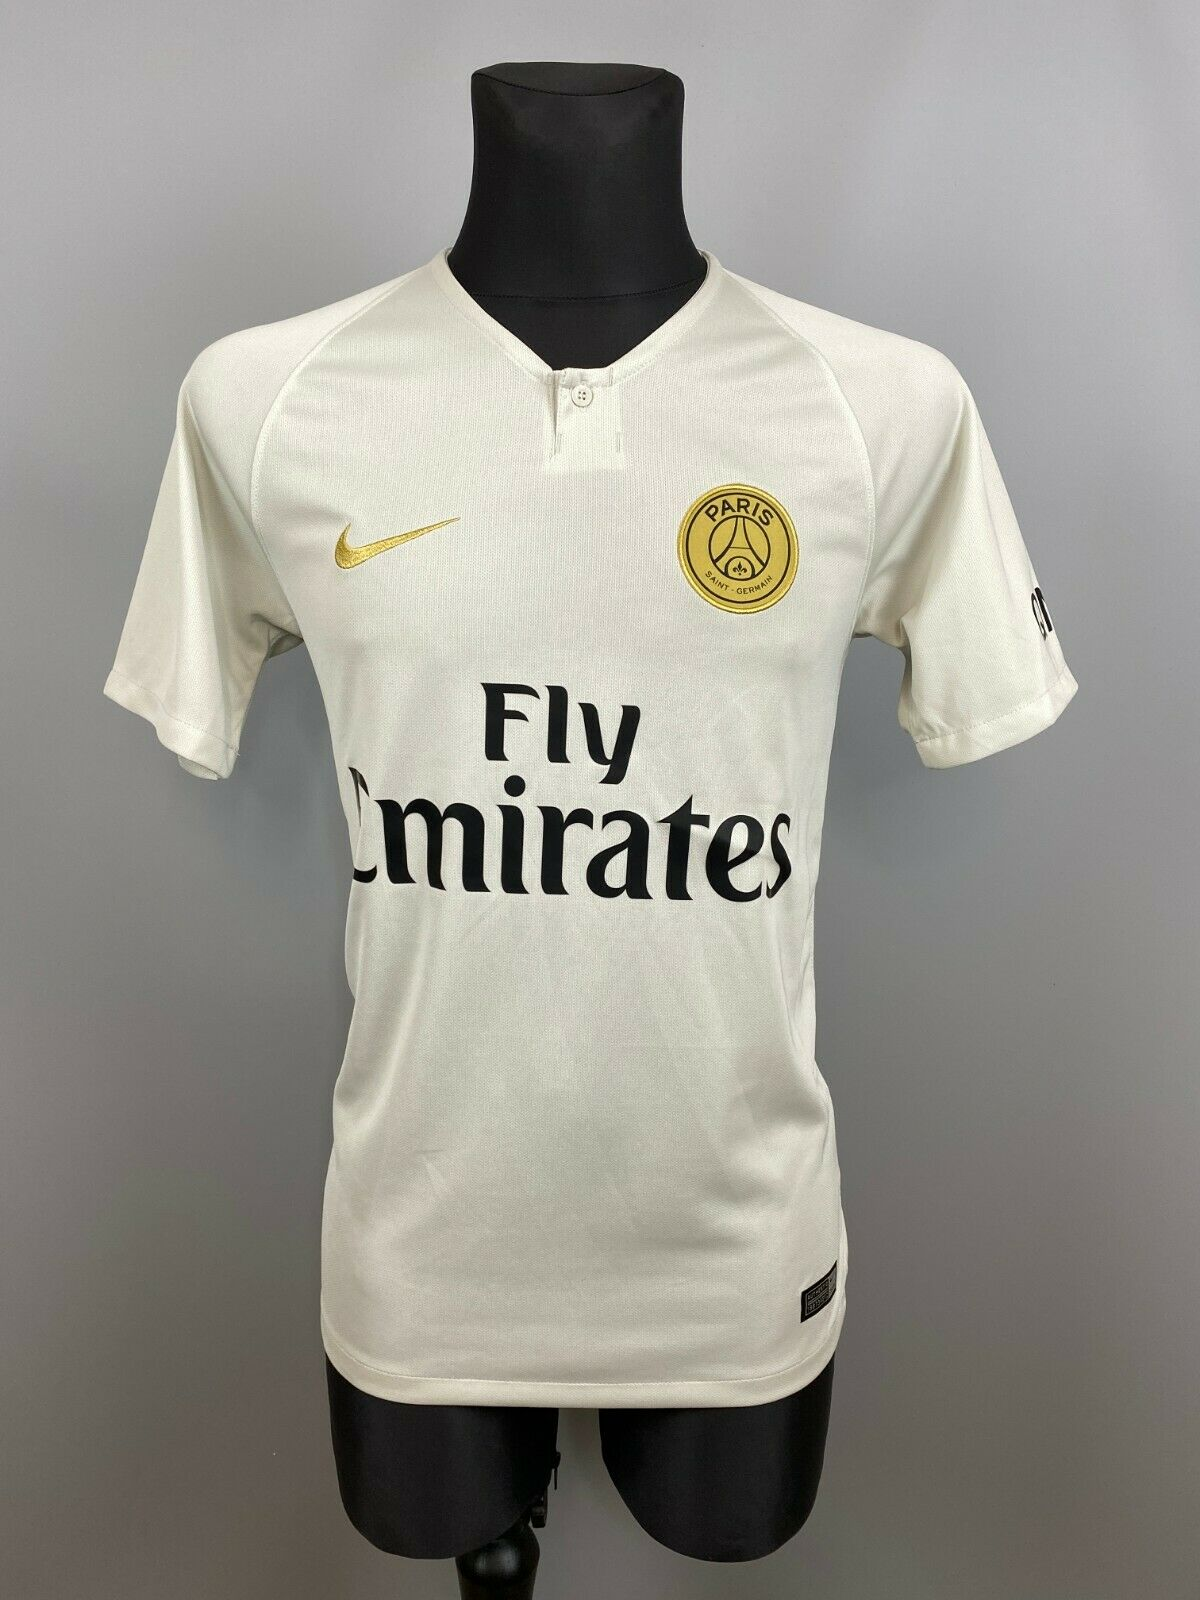 Maillot PSG 2013//2014 away player issue stock joueur BNWT XL